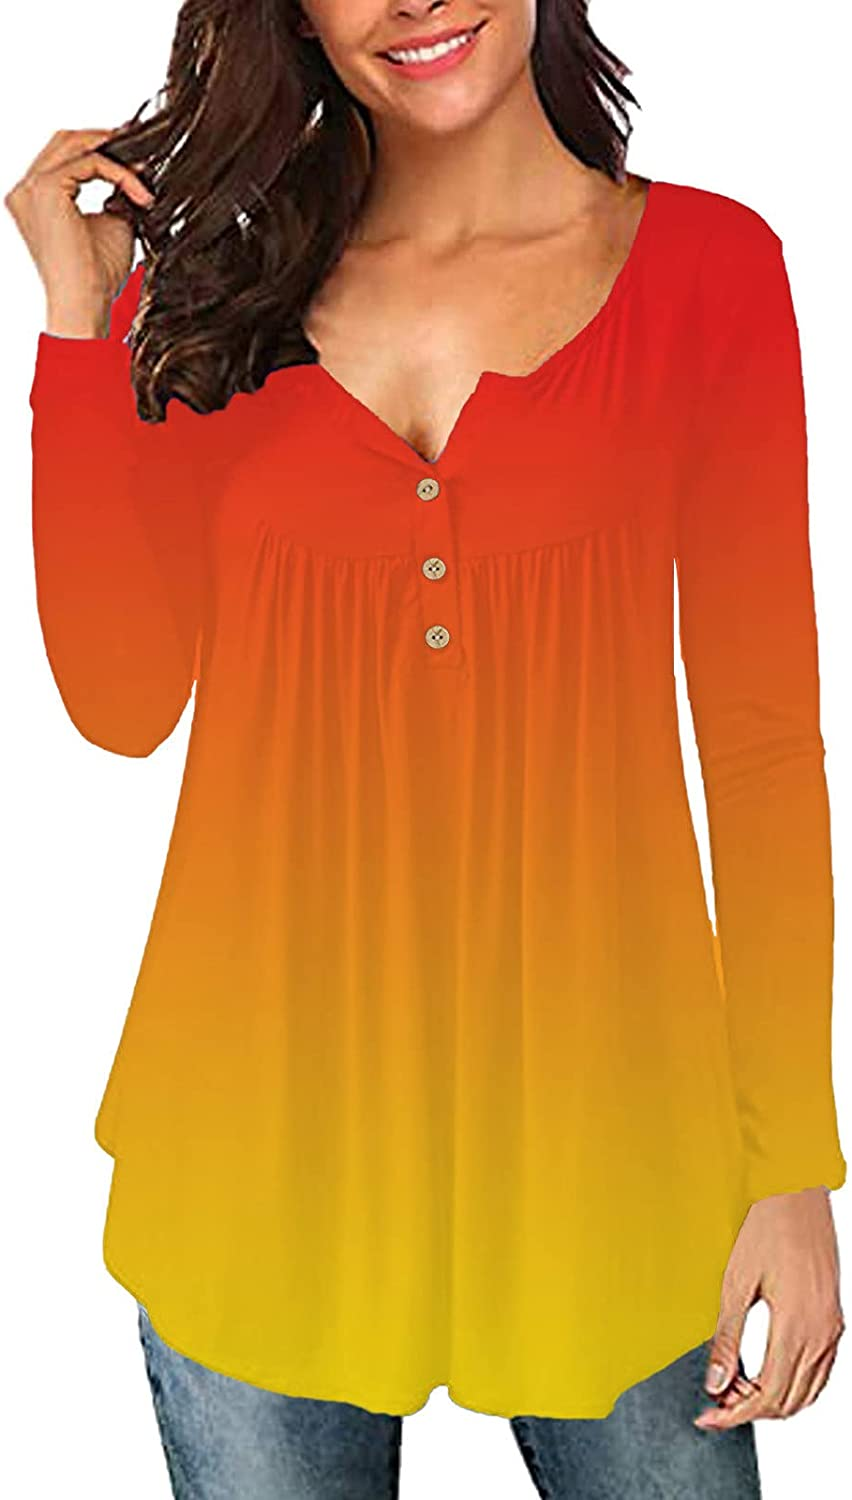 Plus Size Tops for Women, Women 's V Neck Botton Up Long Sleeve Gradient Casual Loose Blouse Tunic Shirts